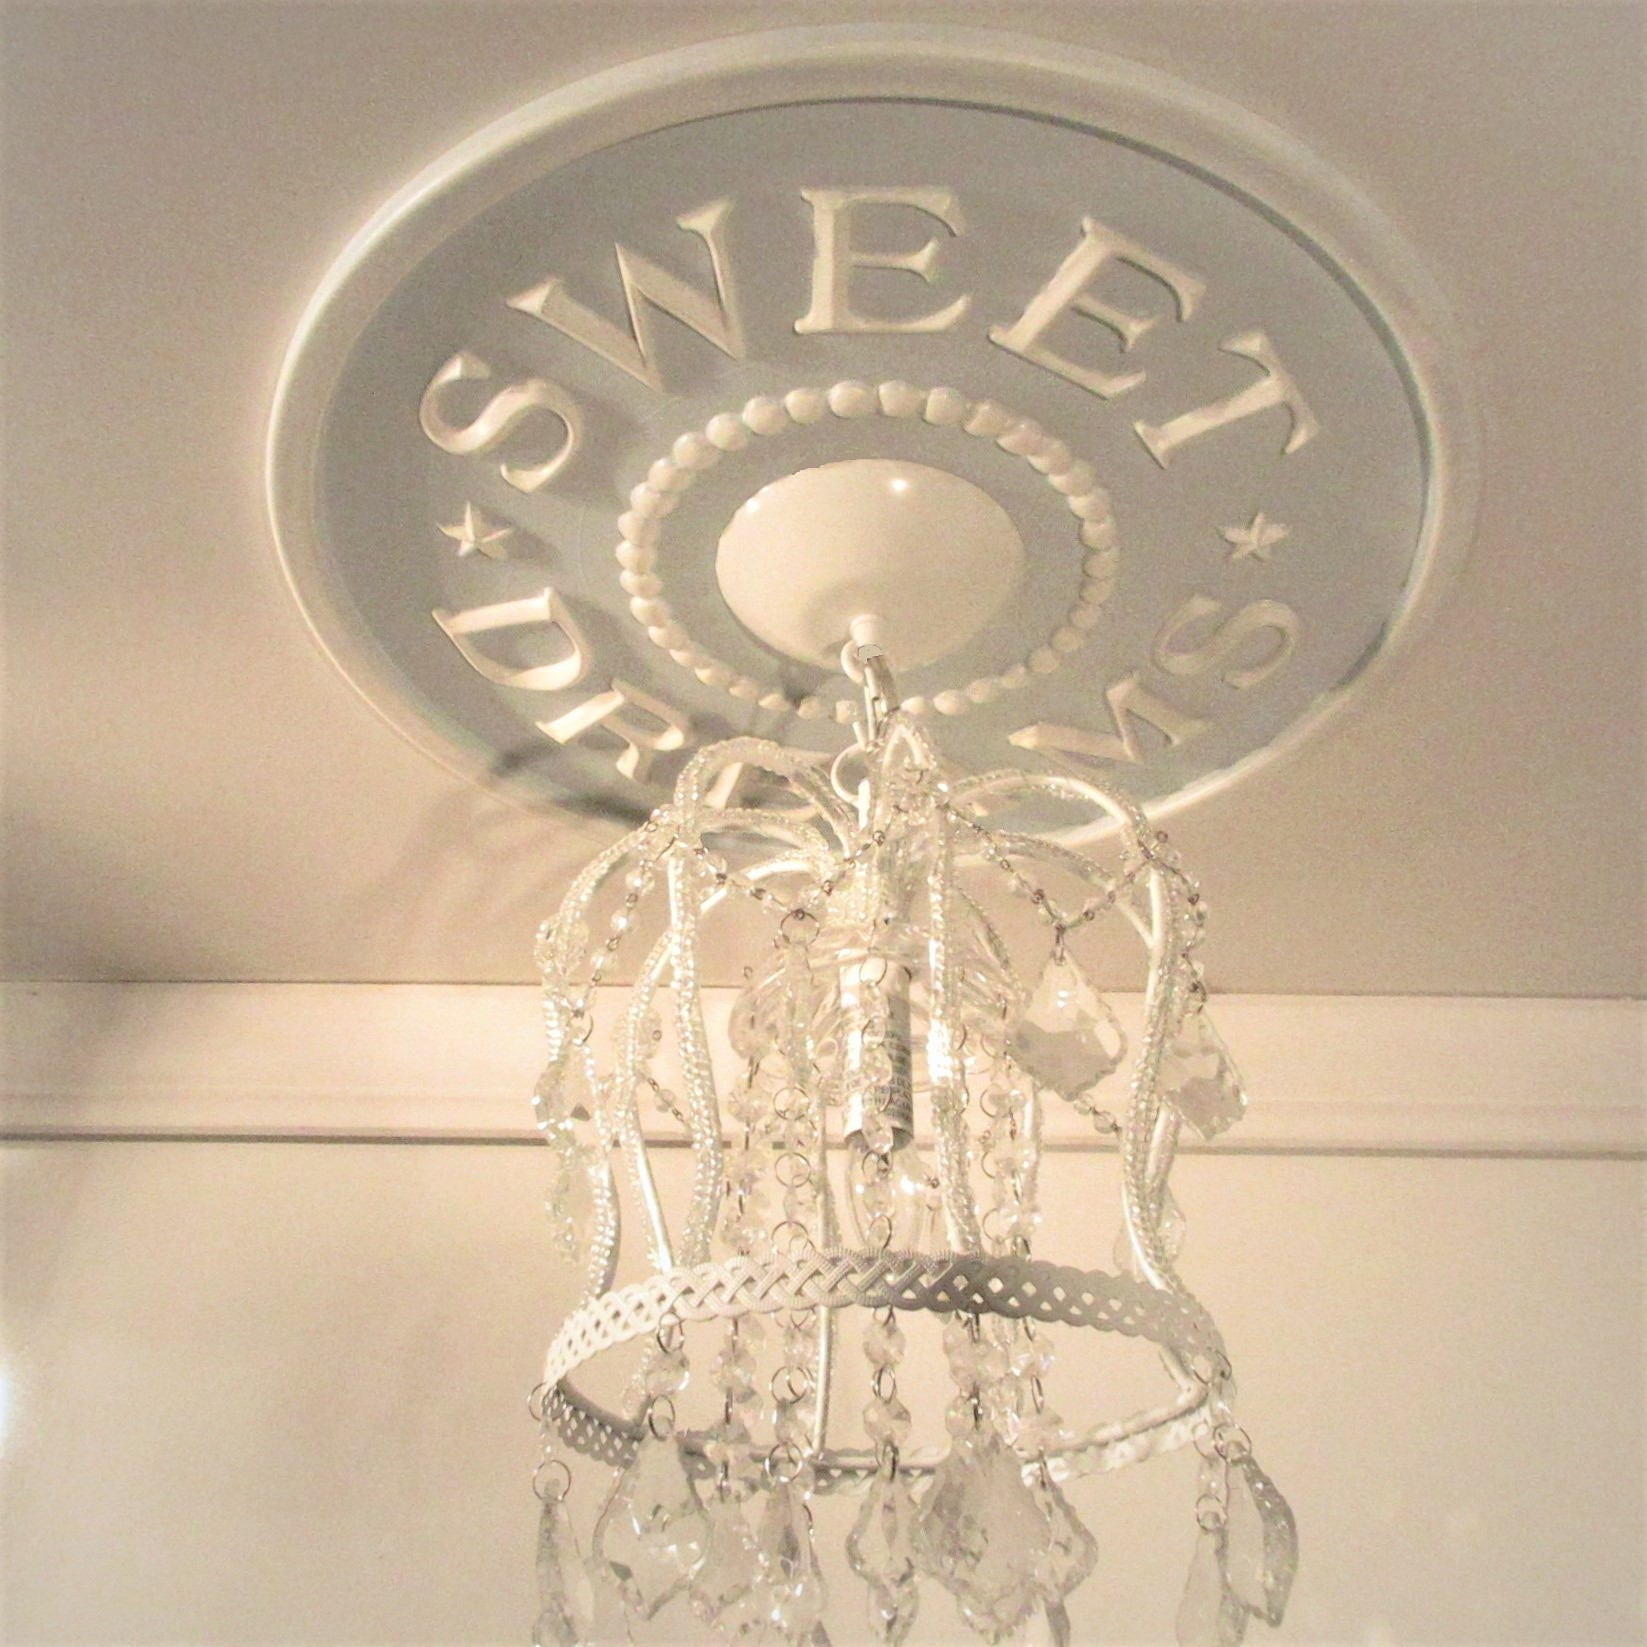 Home and Living, Farmhouse, Baby Shower Gift, Sweet Dreams Ceiling  Medallion, Marie Ricci, Lighting, Girls Room Decor, Ceiling Medallions